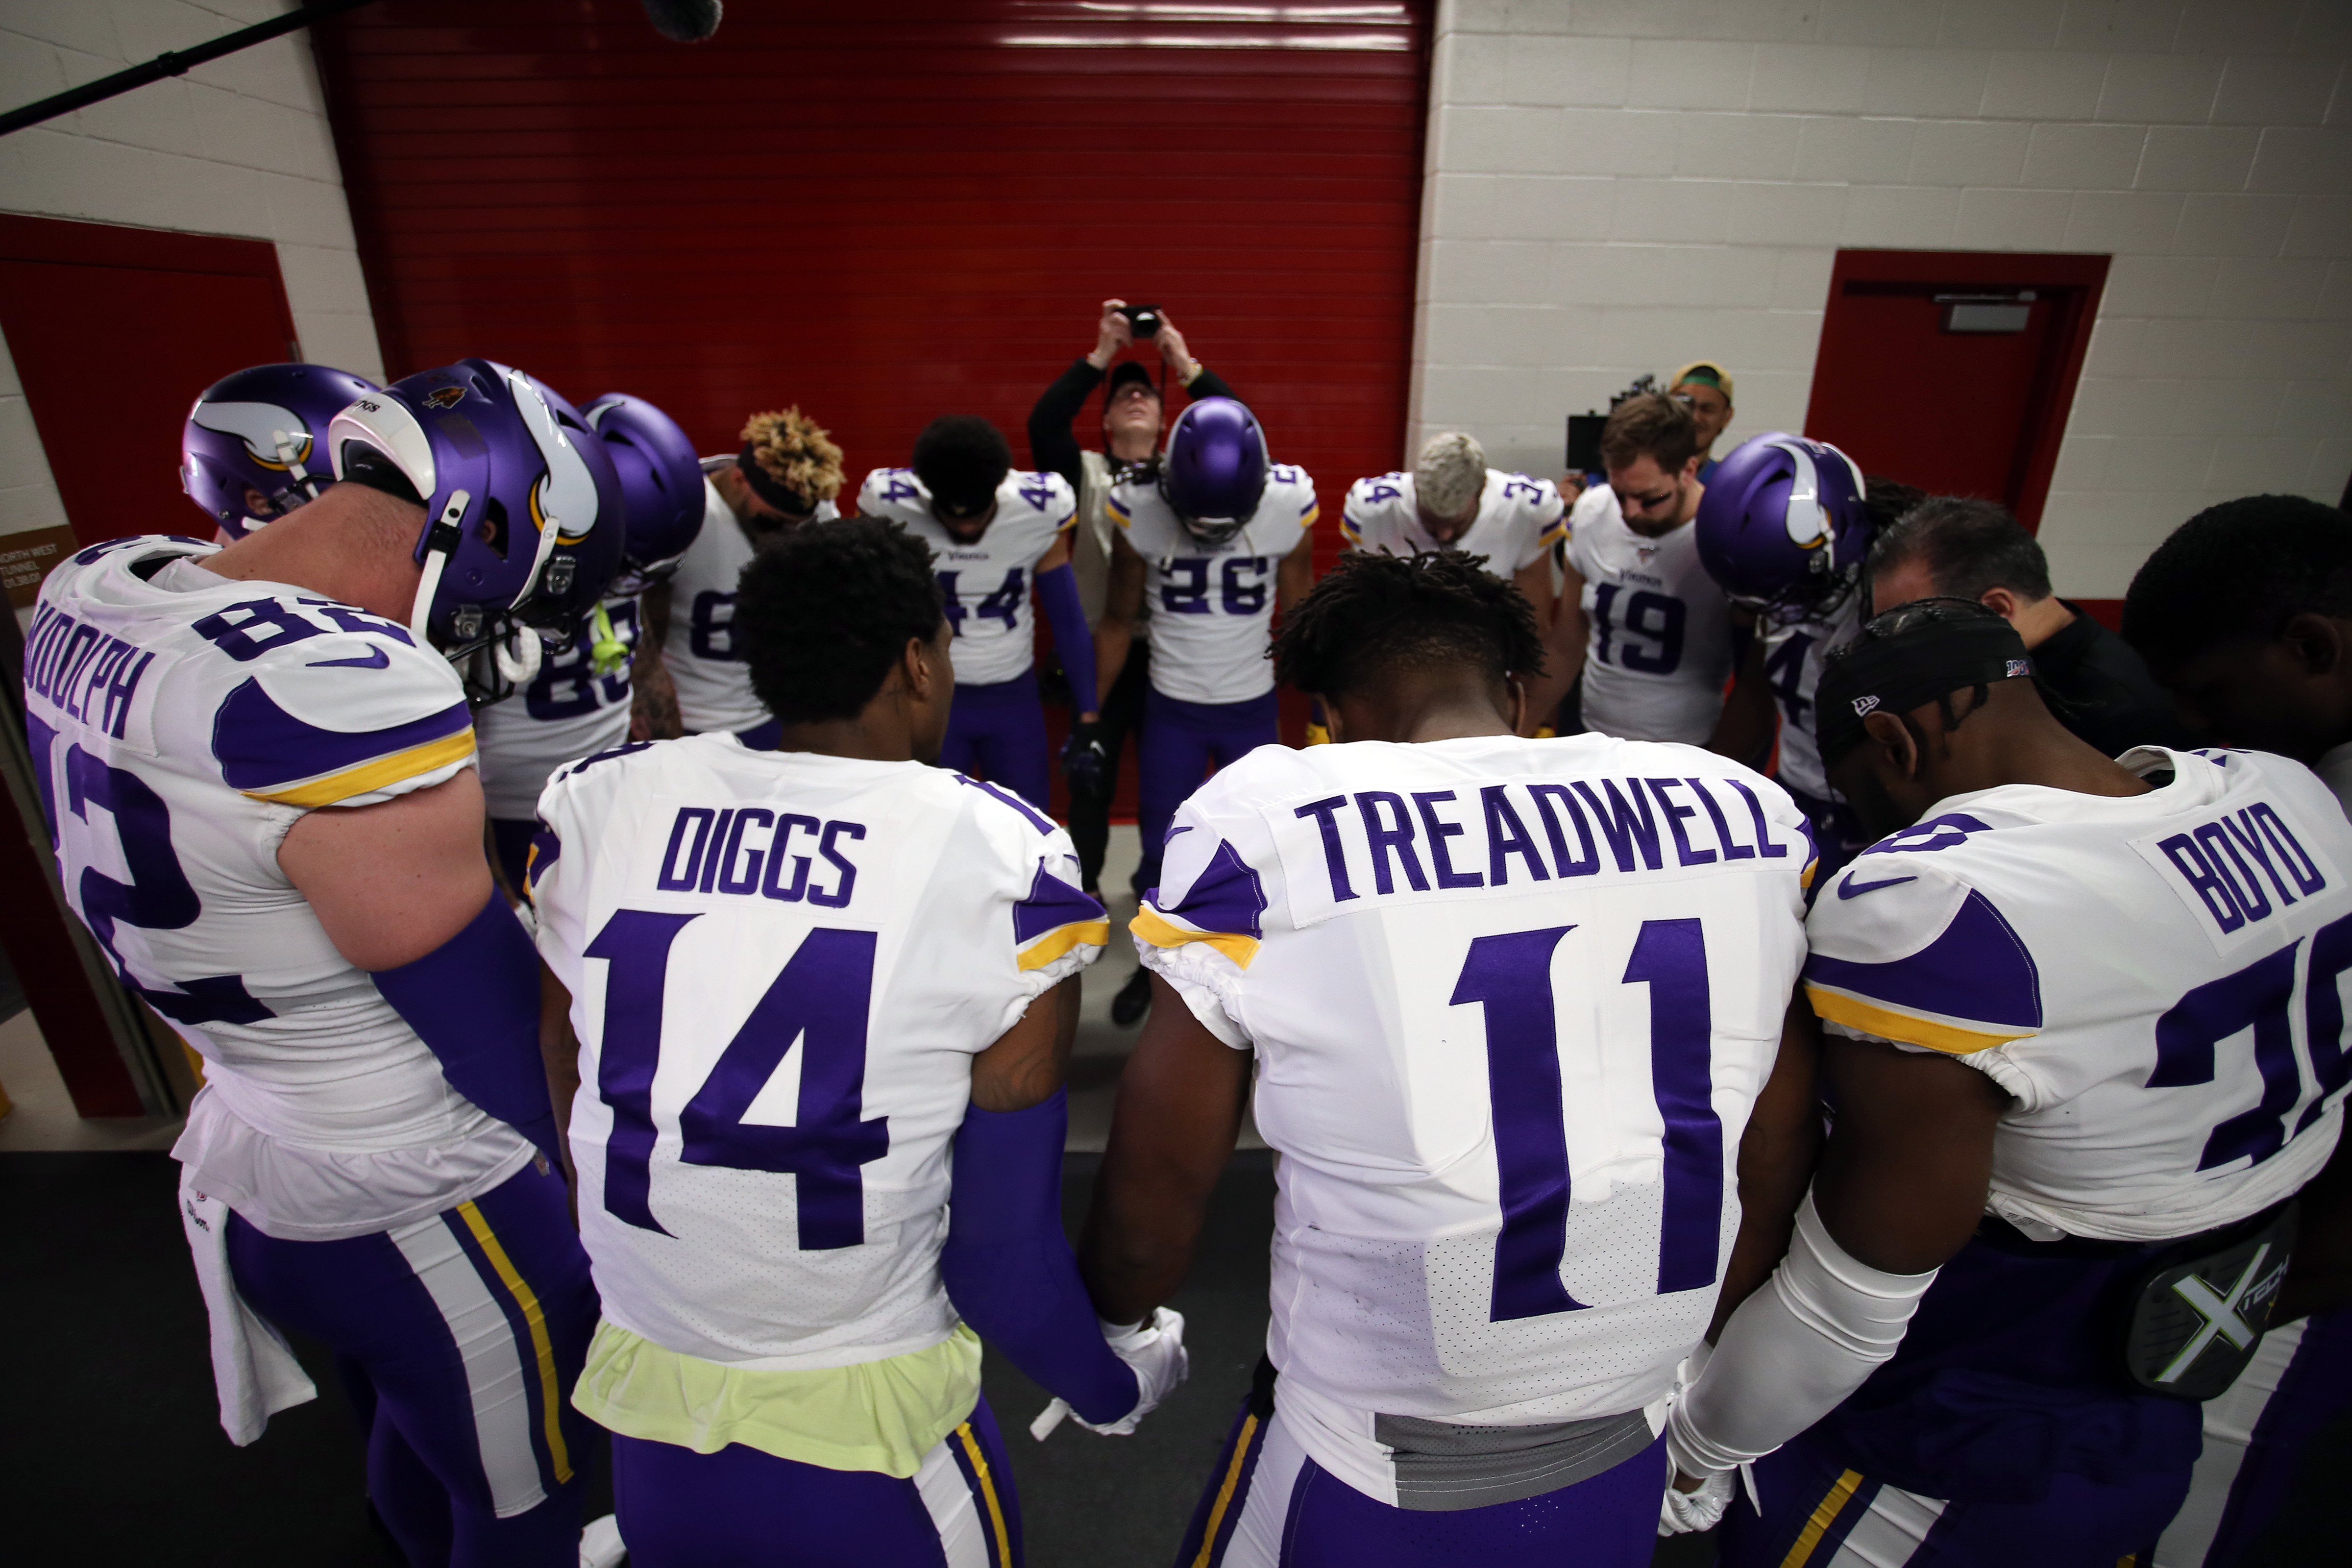 NFL: JAN 11 NFC Divisional Playoff - Vikings at 49ers